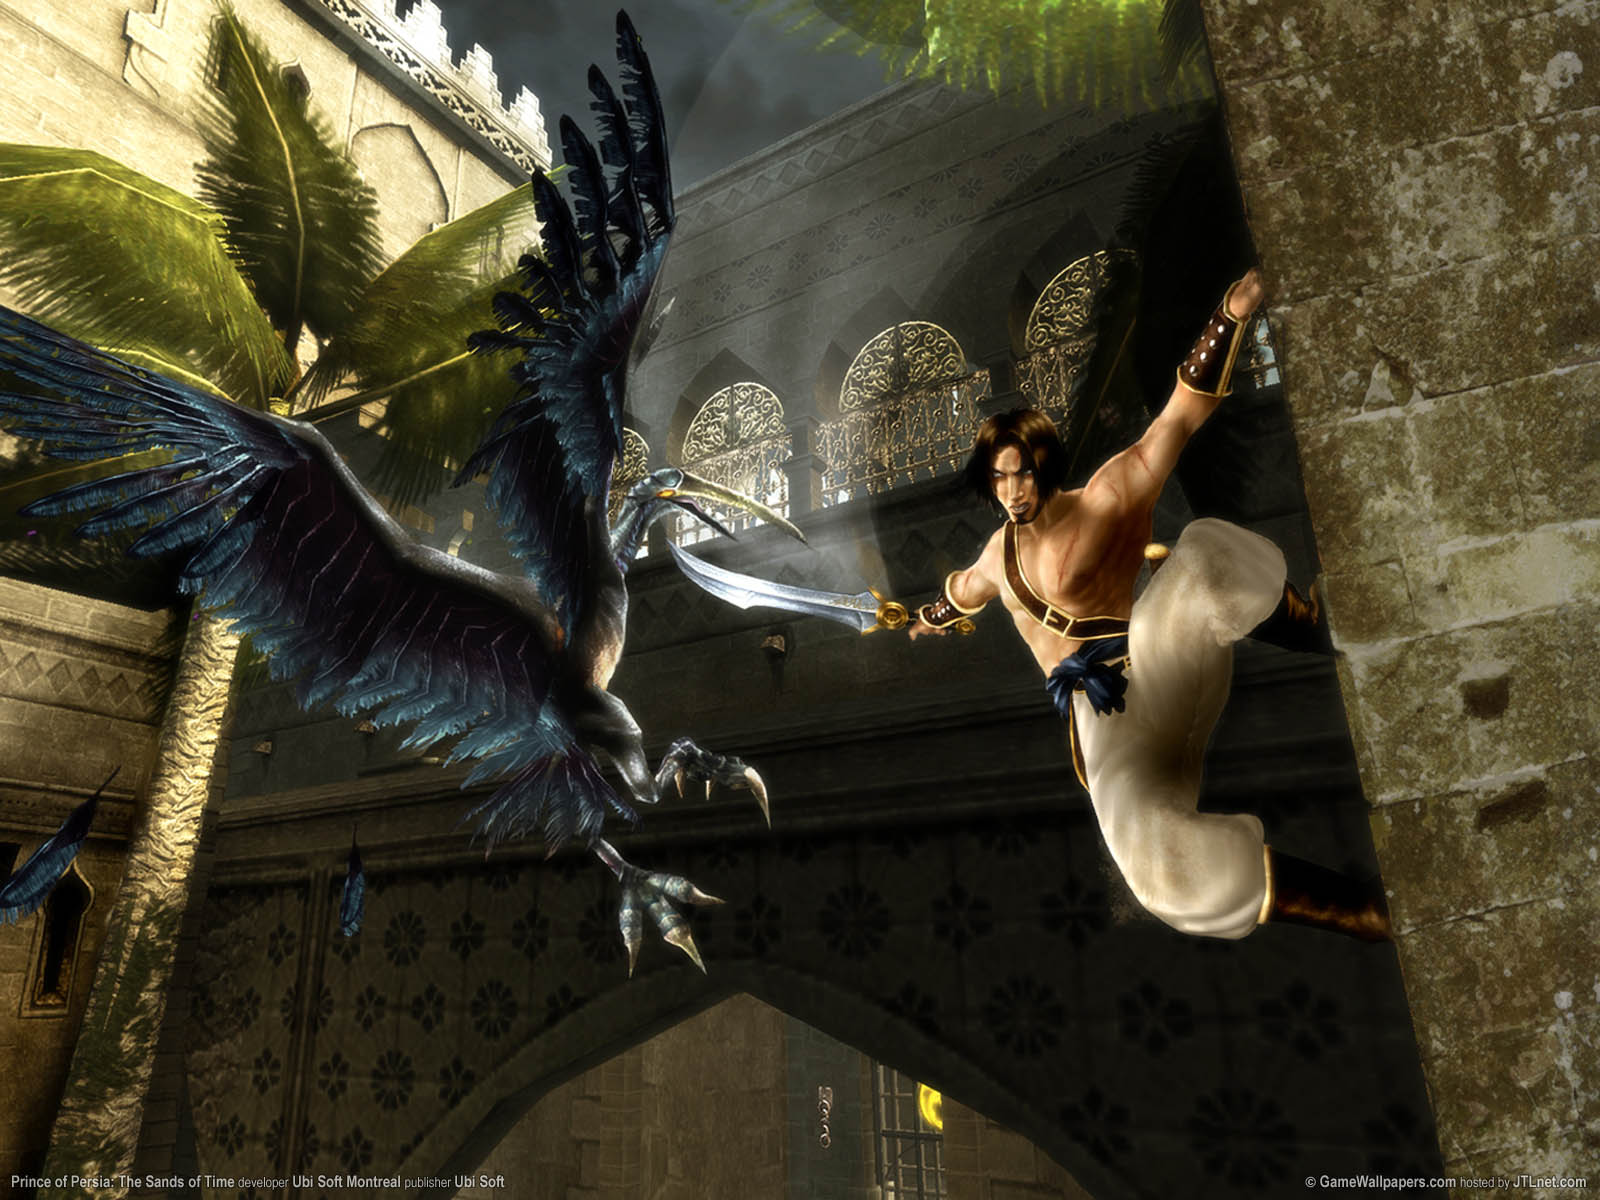 Prince of Persia the Sands of Time 768.85 Kb